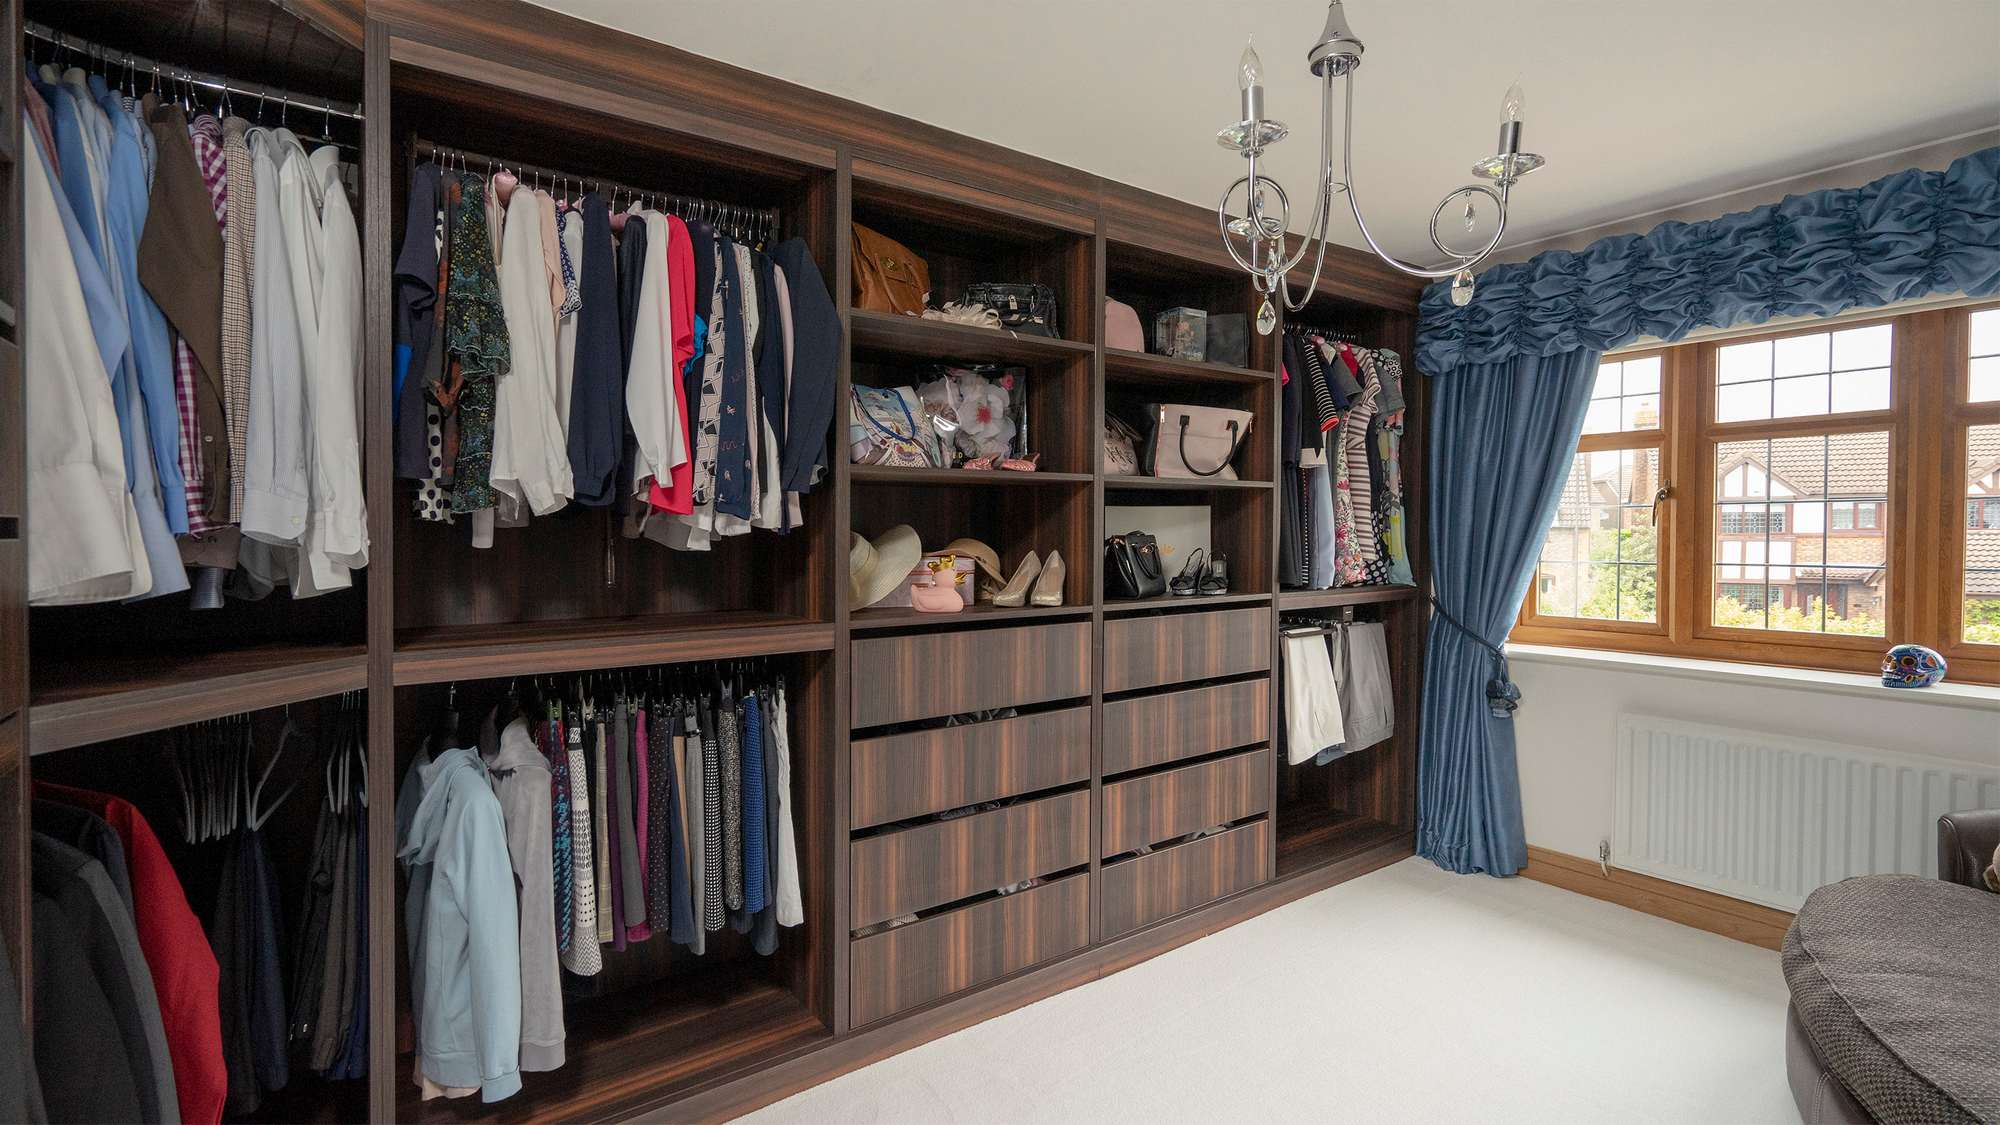 Image showing some of the storage on offer in this stunning walk-in wardrobe featuring clothing rails, central shelving and drawers.